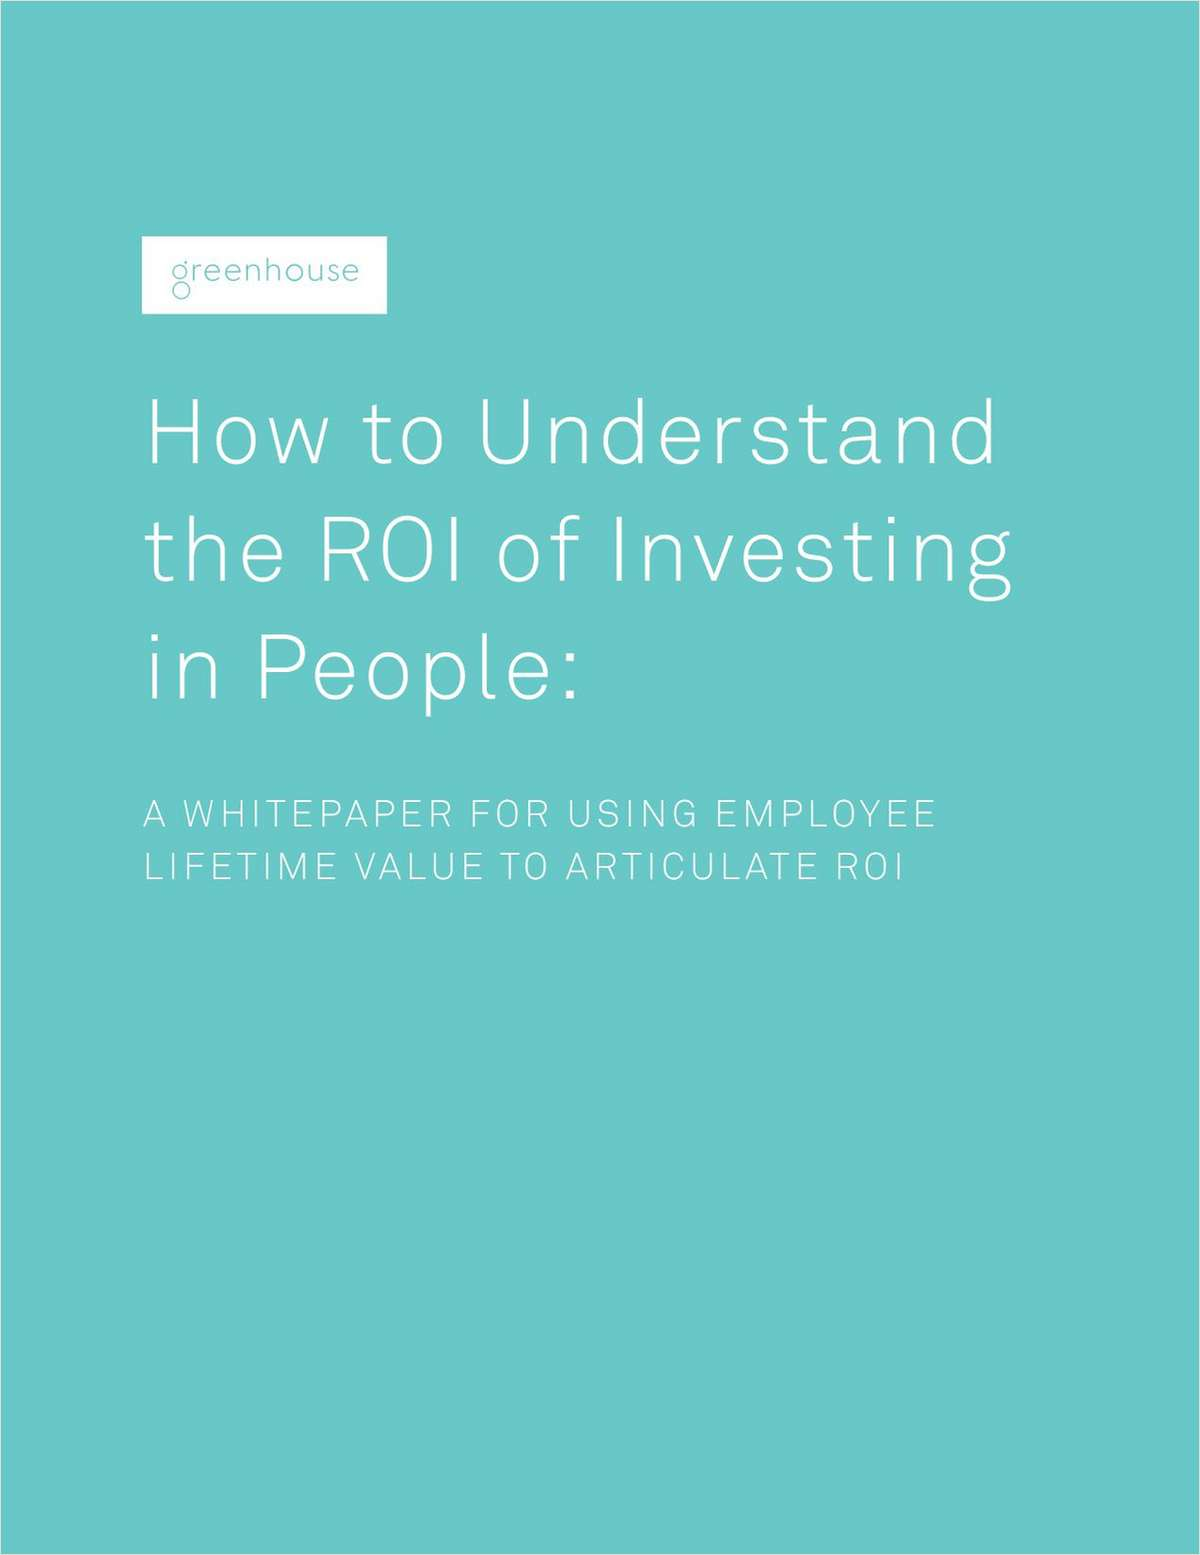 How to Understand the ROI of Investing in People